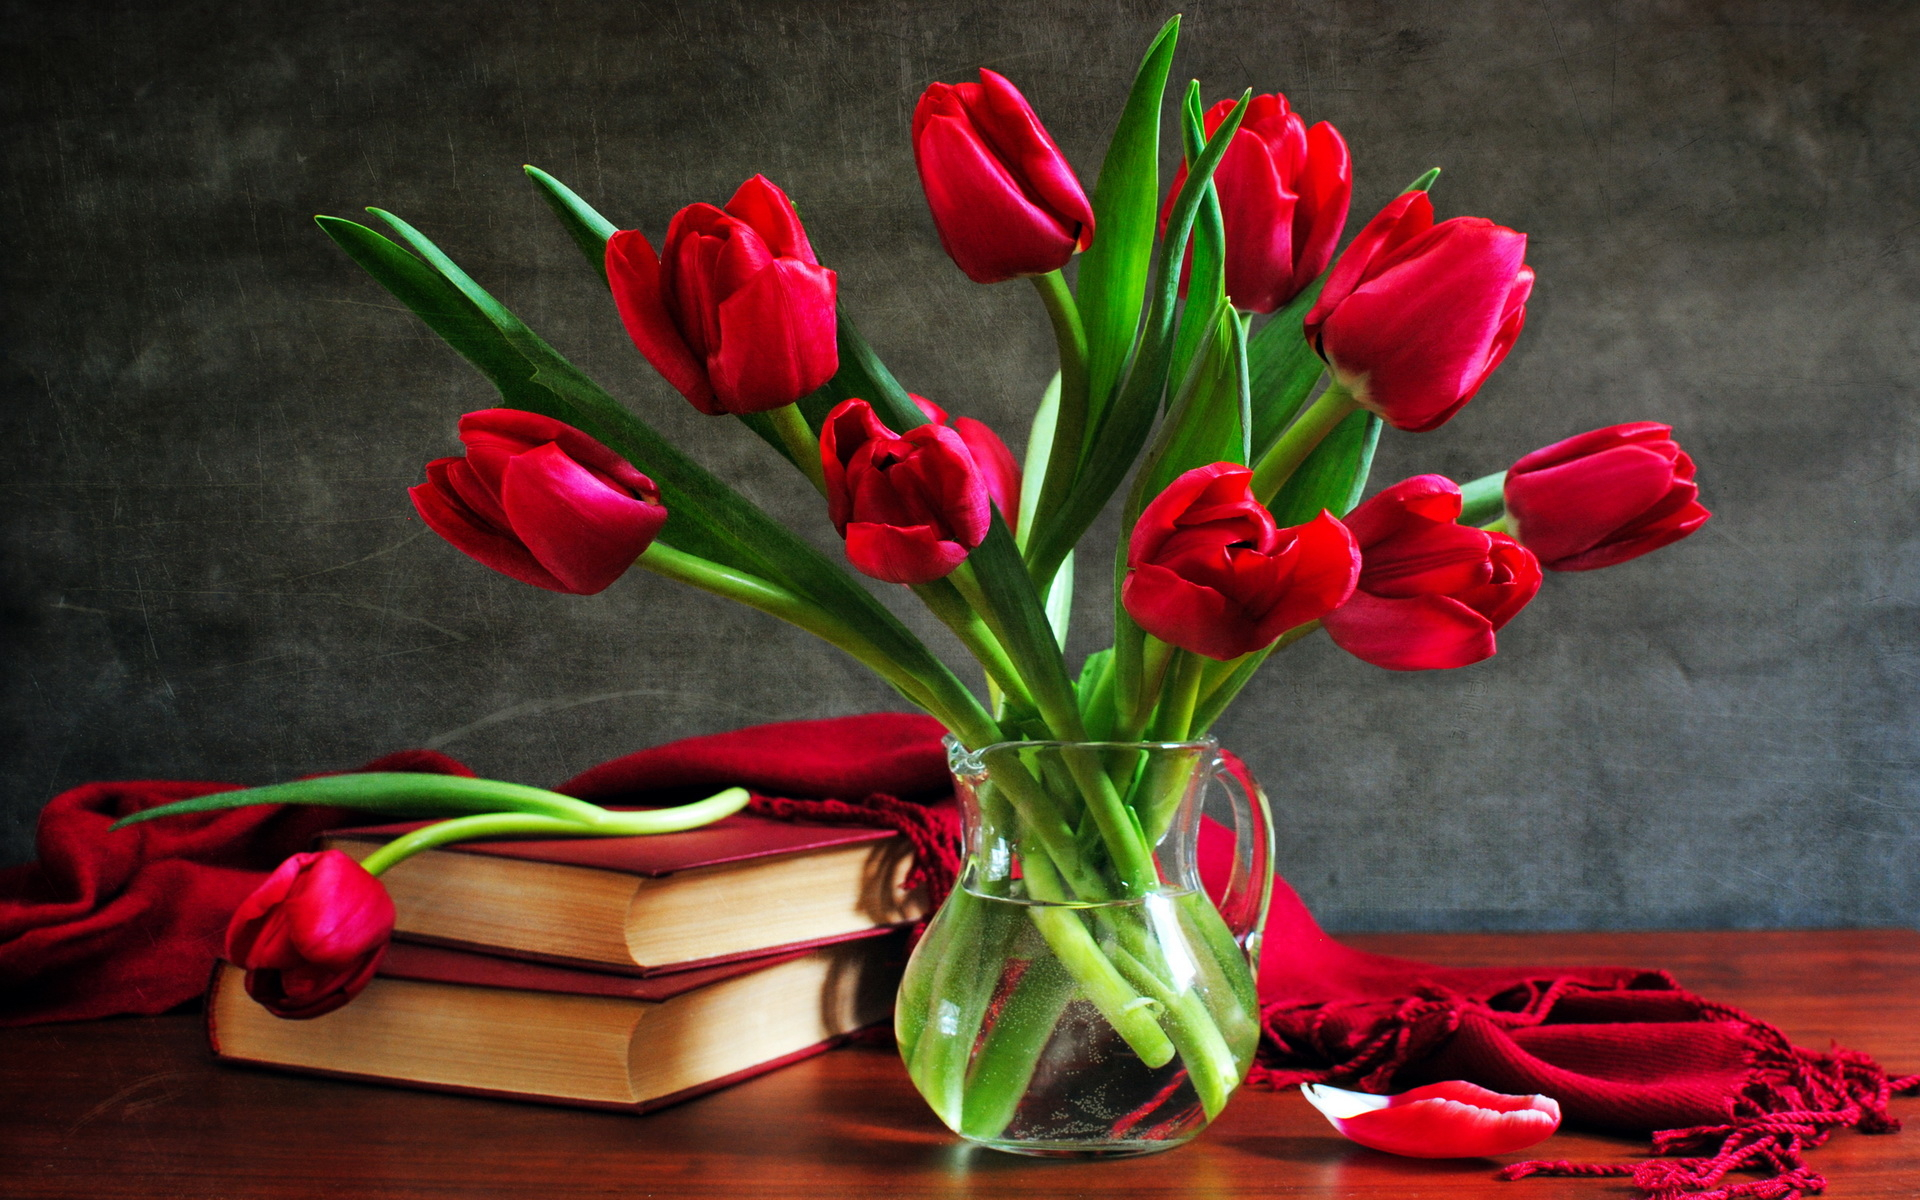 Tulips for dear Olga